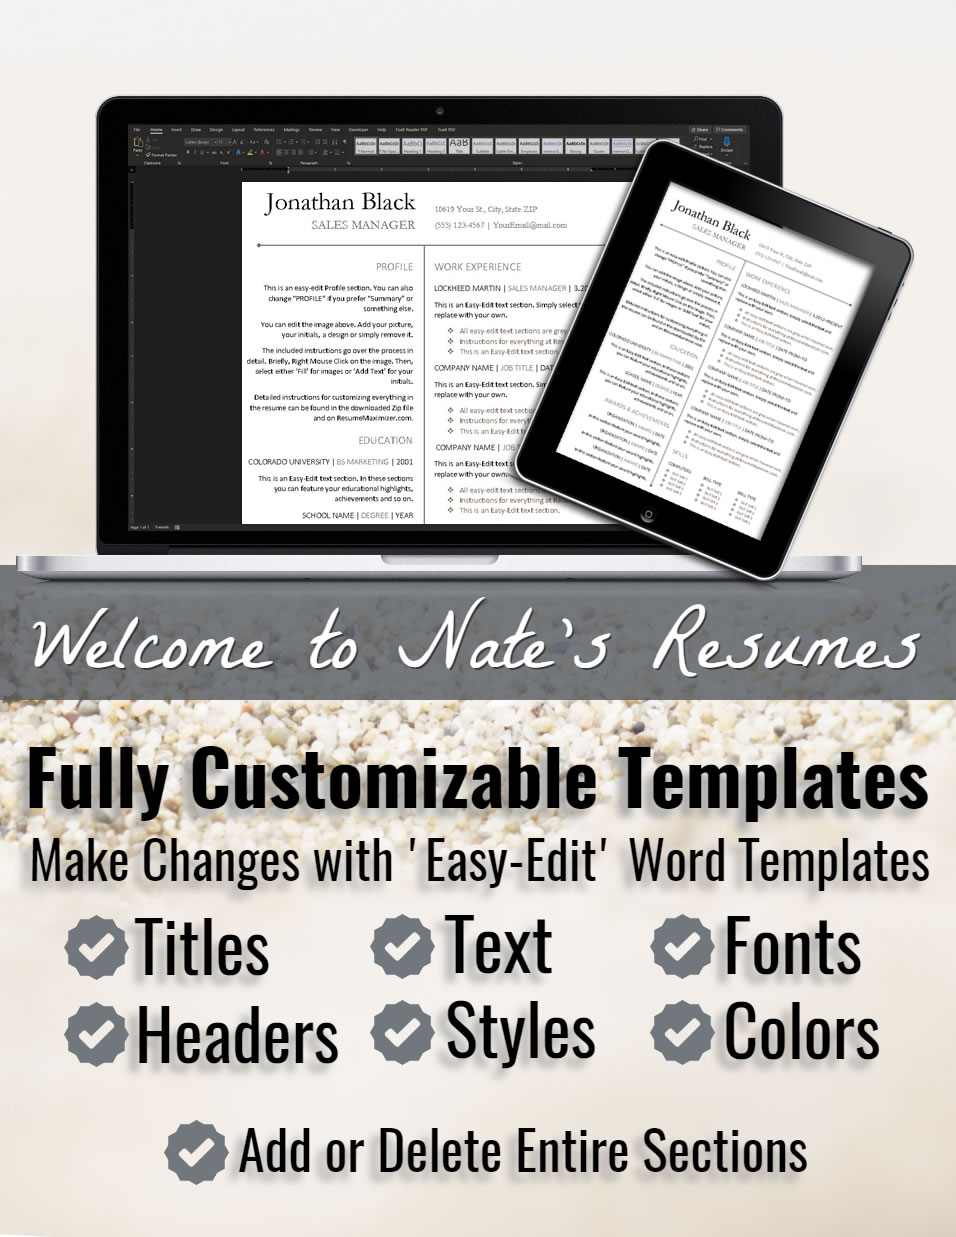 Style Grace - Make-Easy-Edits-to-Templates-LONG